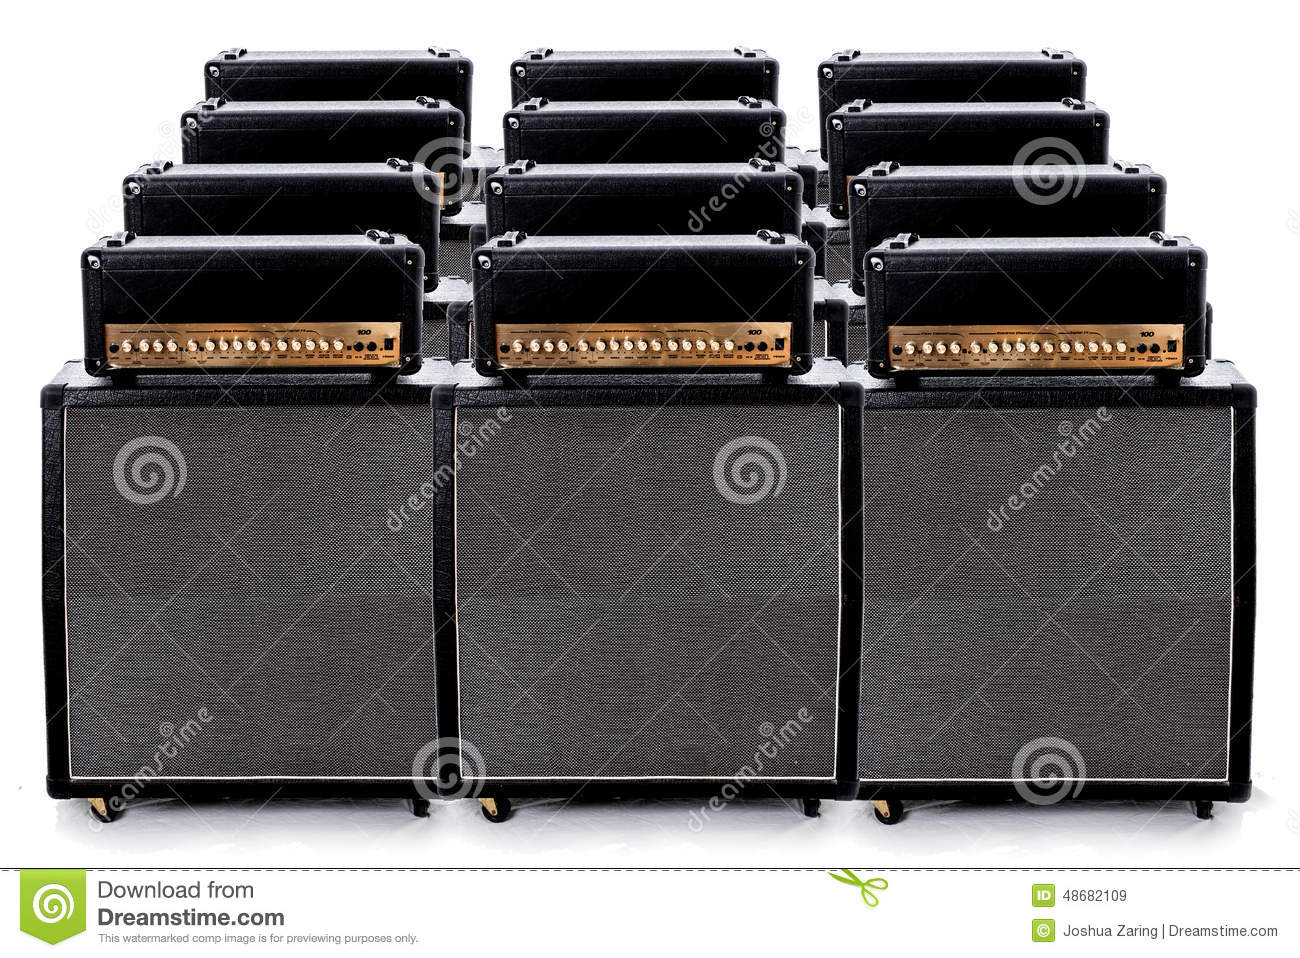 Guitar Amp Group Stock Photo - Image: 48682109